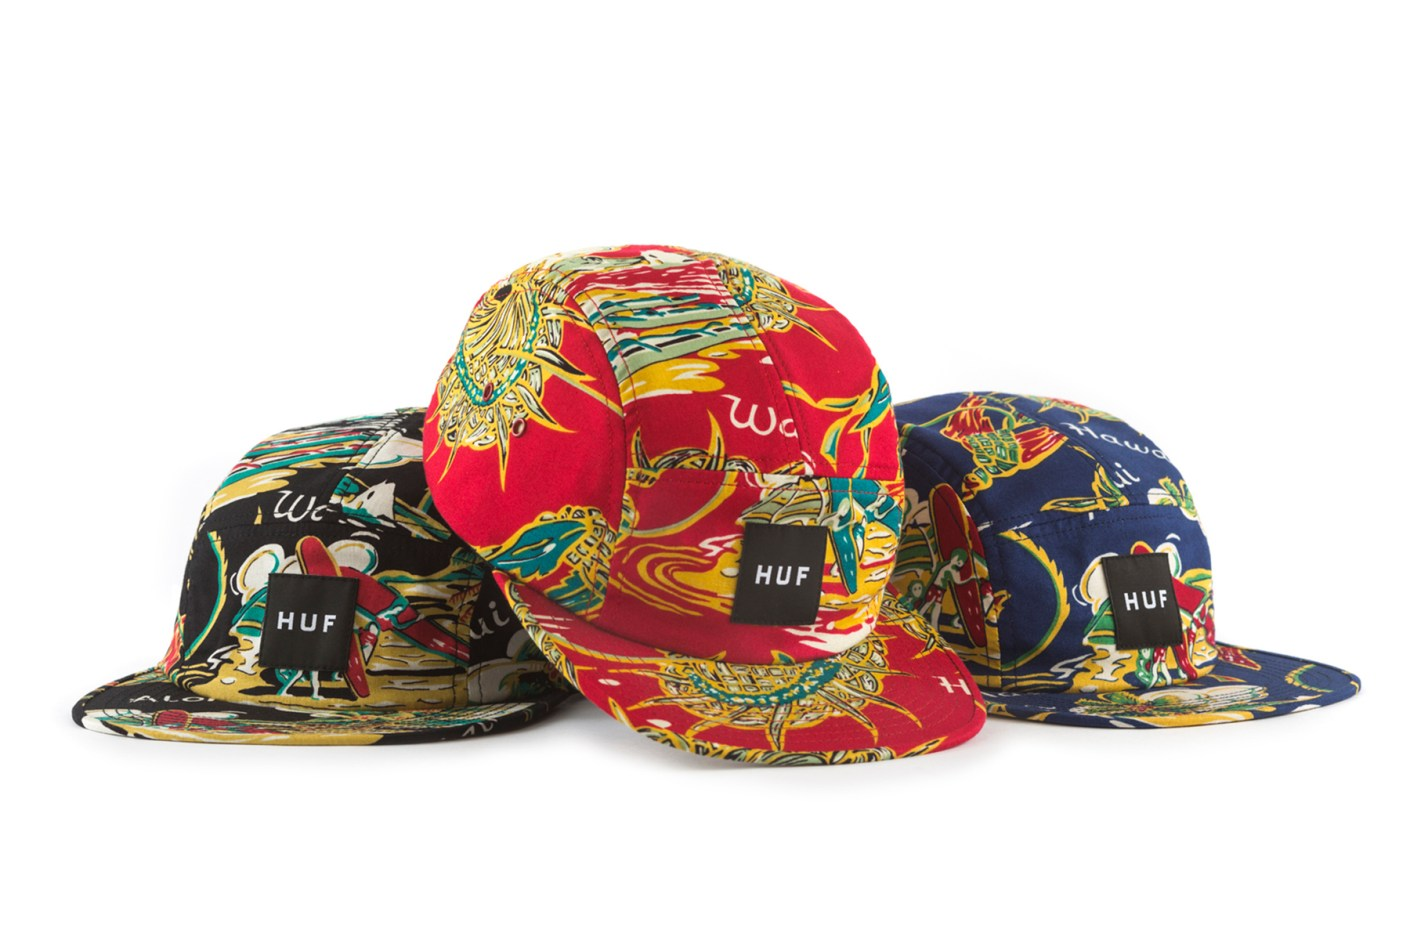 Image of HUF 2014 Spring/Summer Headwear Collection